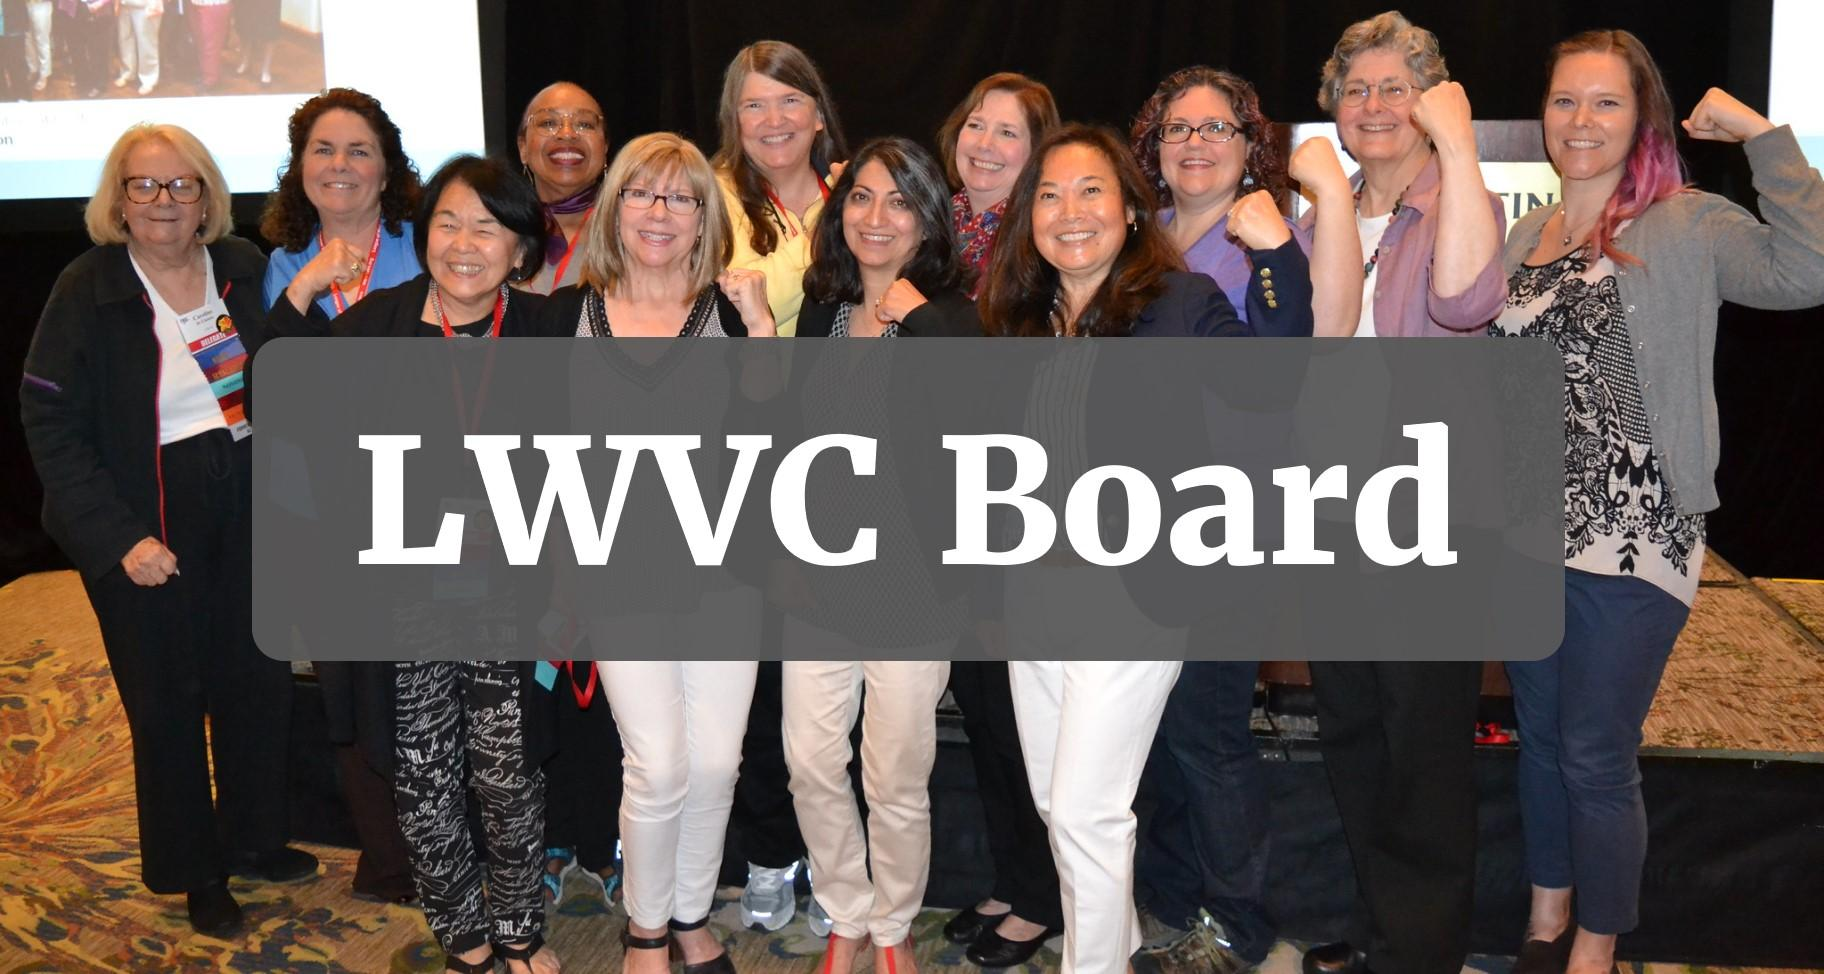 LWVC Board button